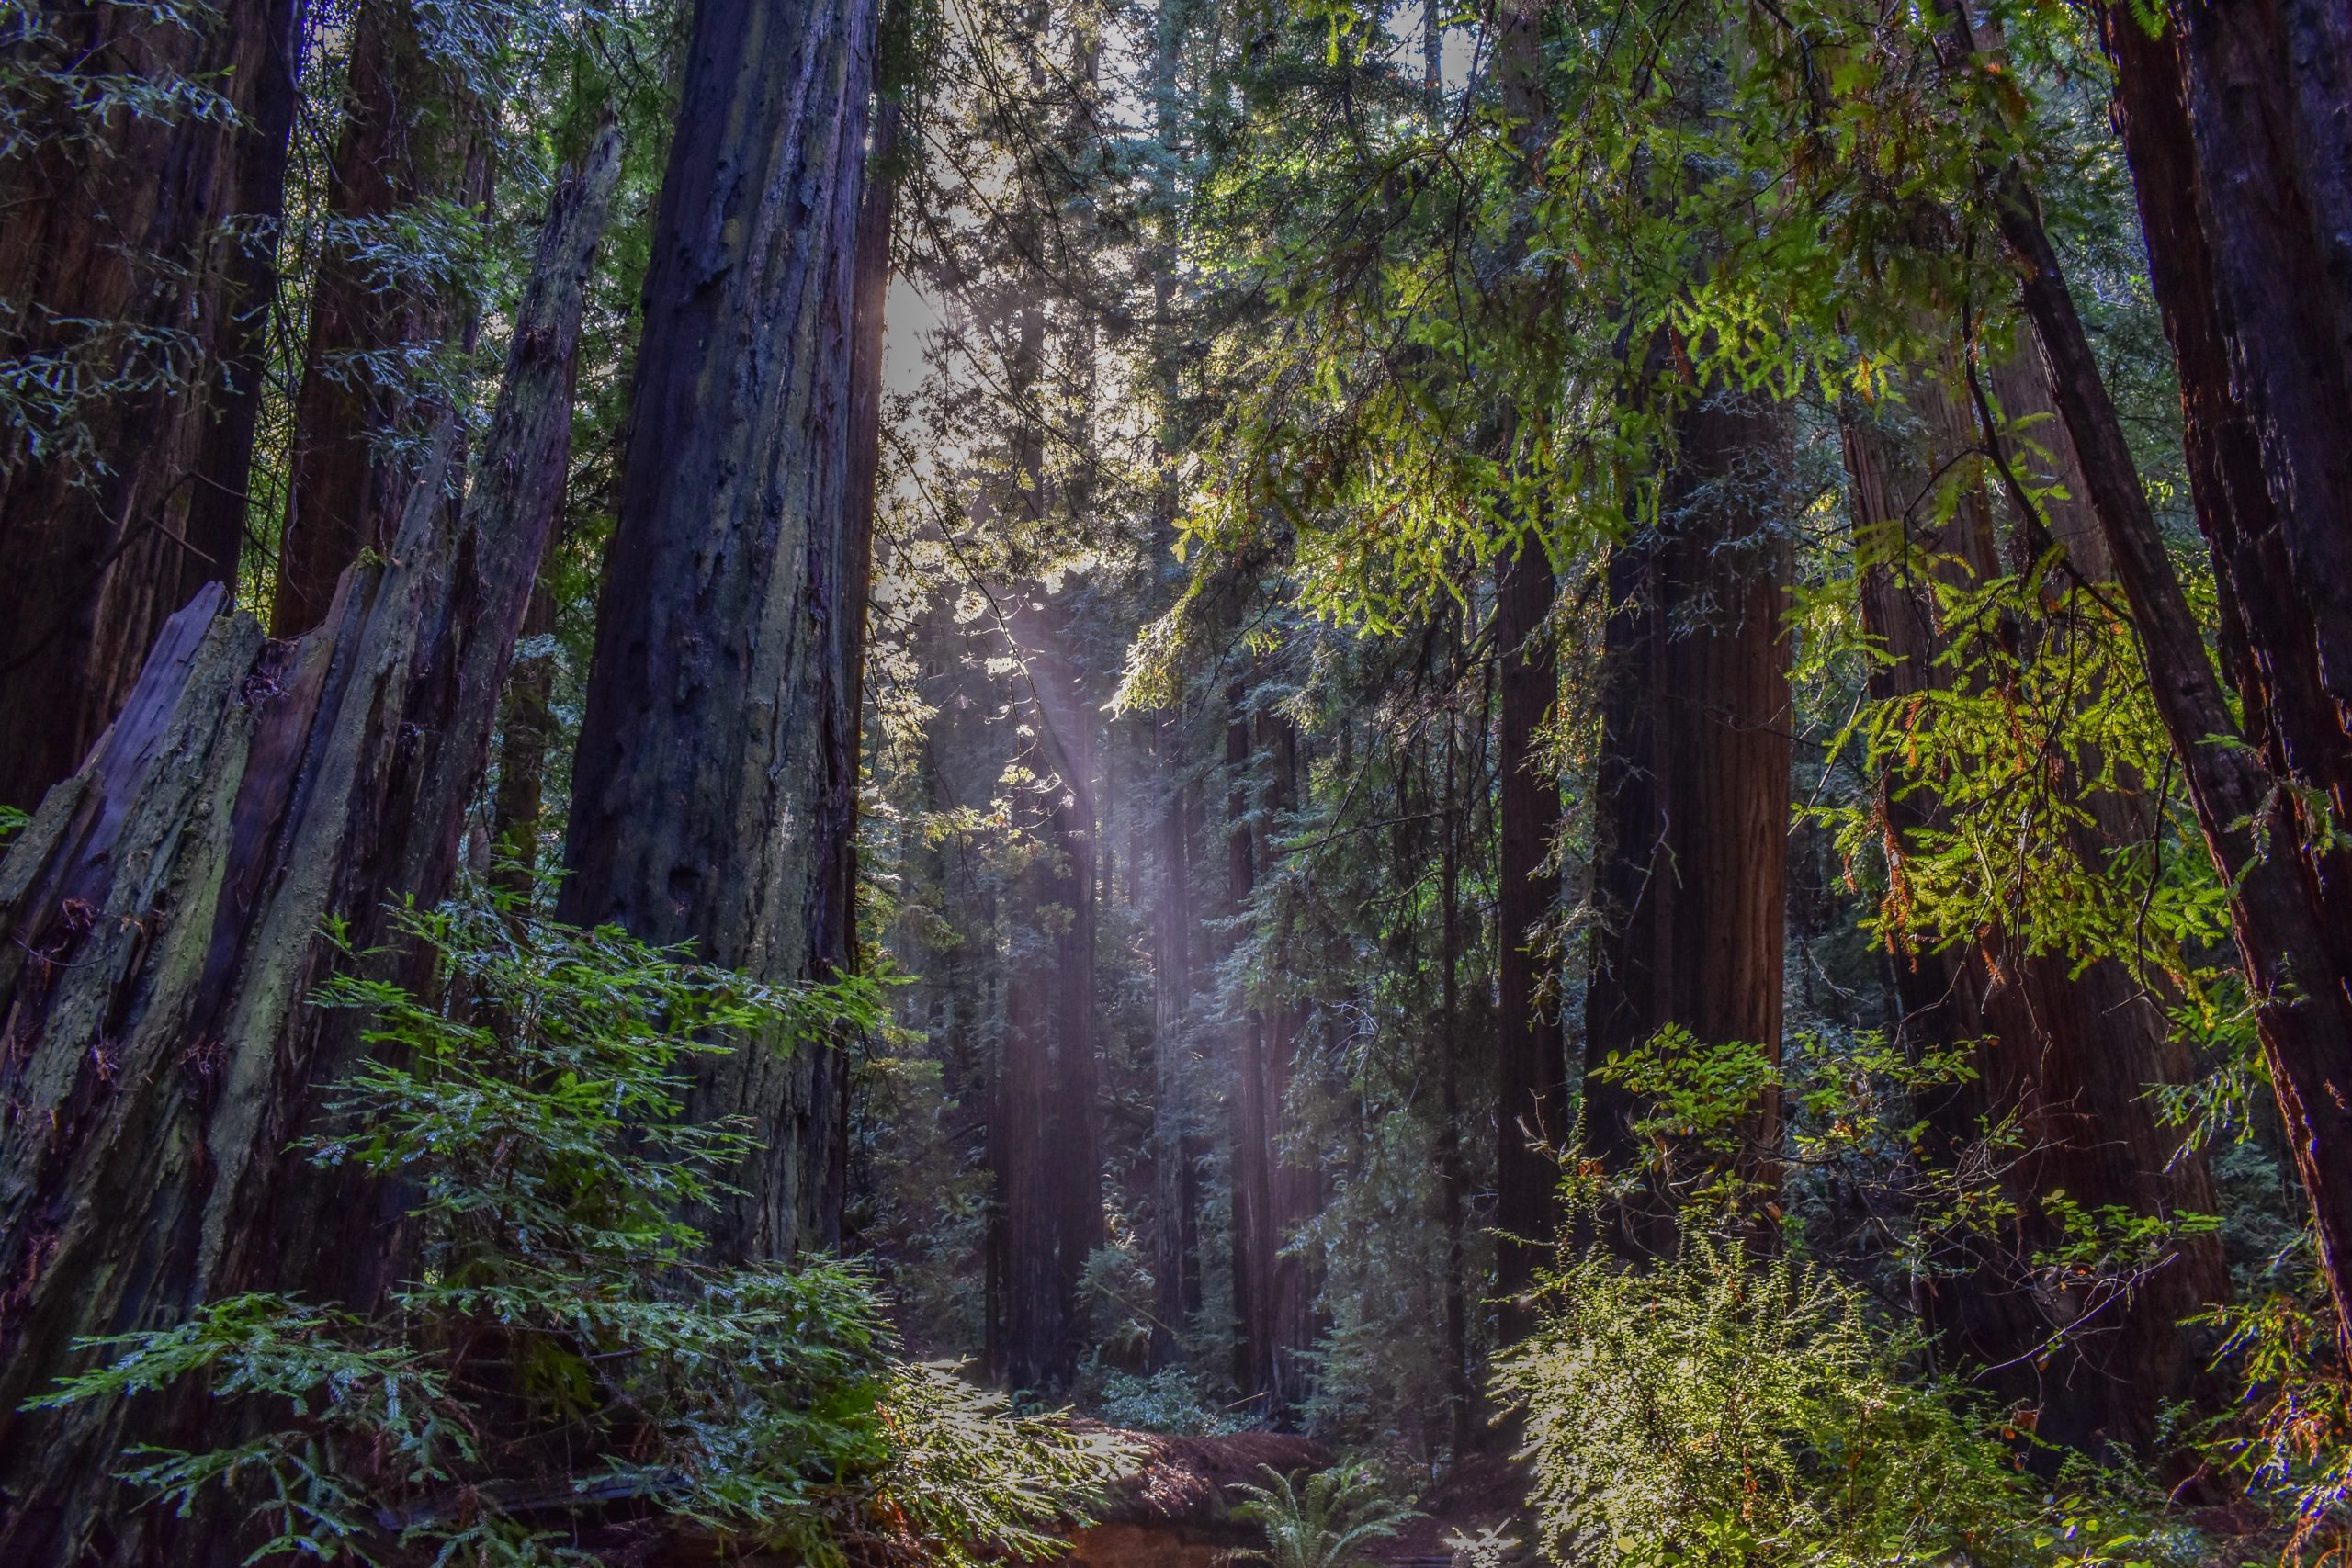 Sunlight filtering through the trees of Muir Woods